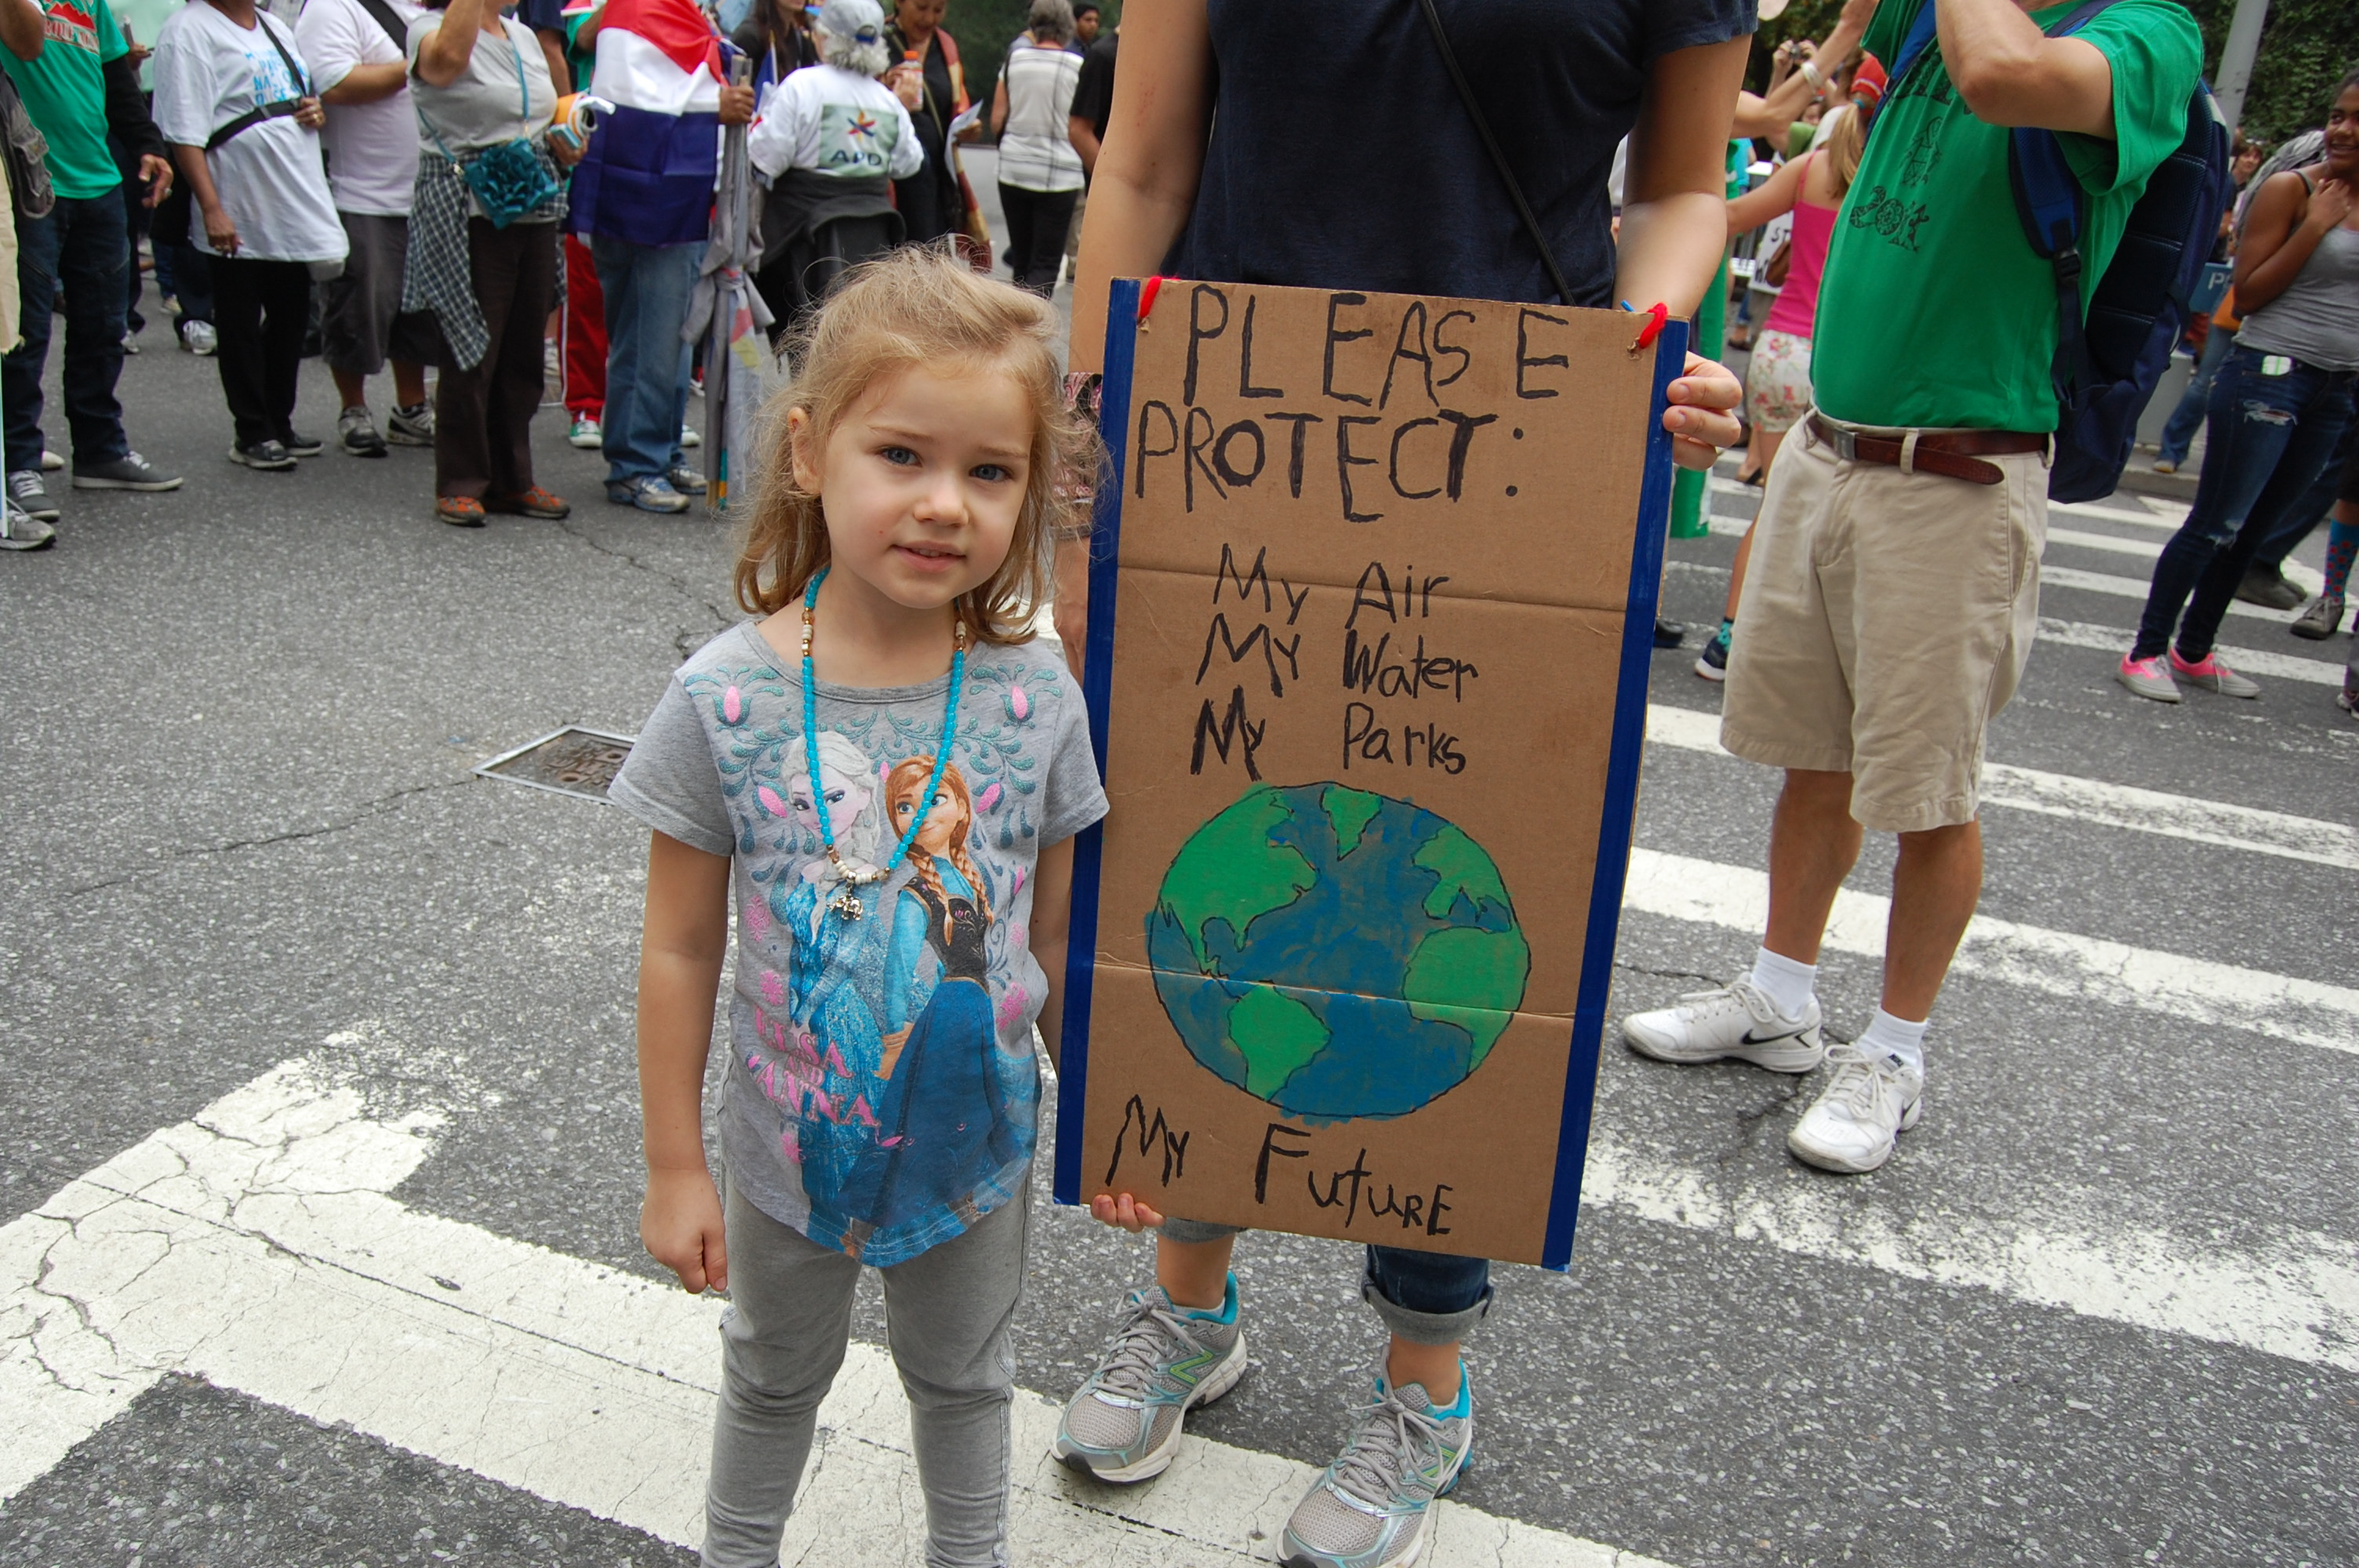 A young marcher and her sign